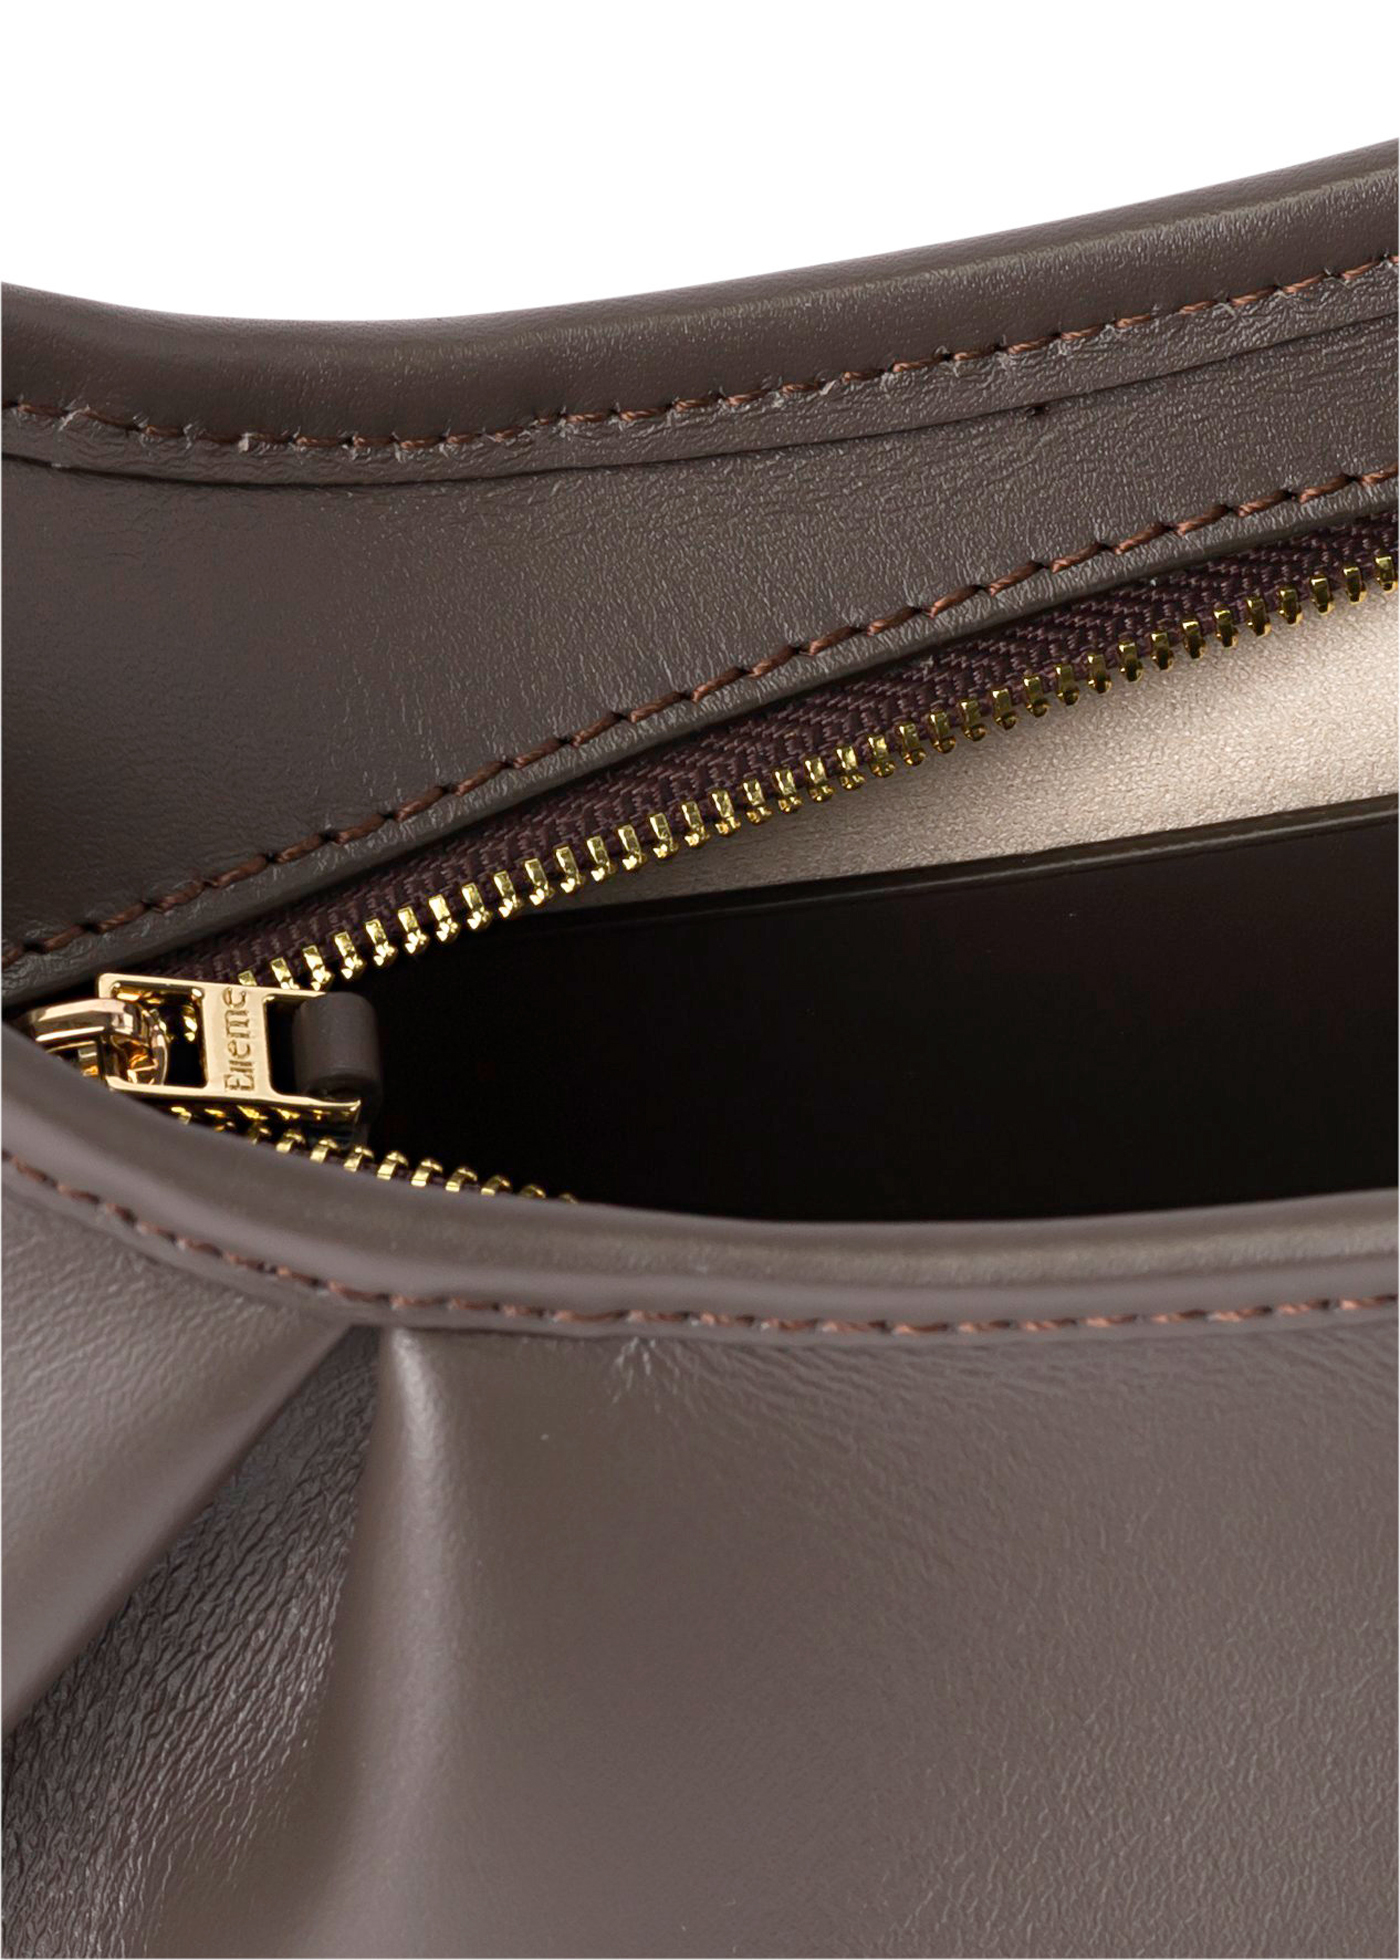 Large Dimple Leather image number 3